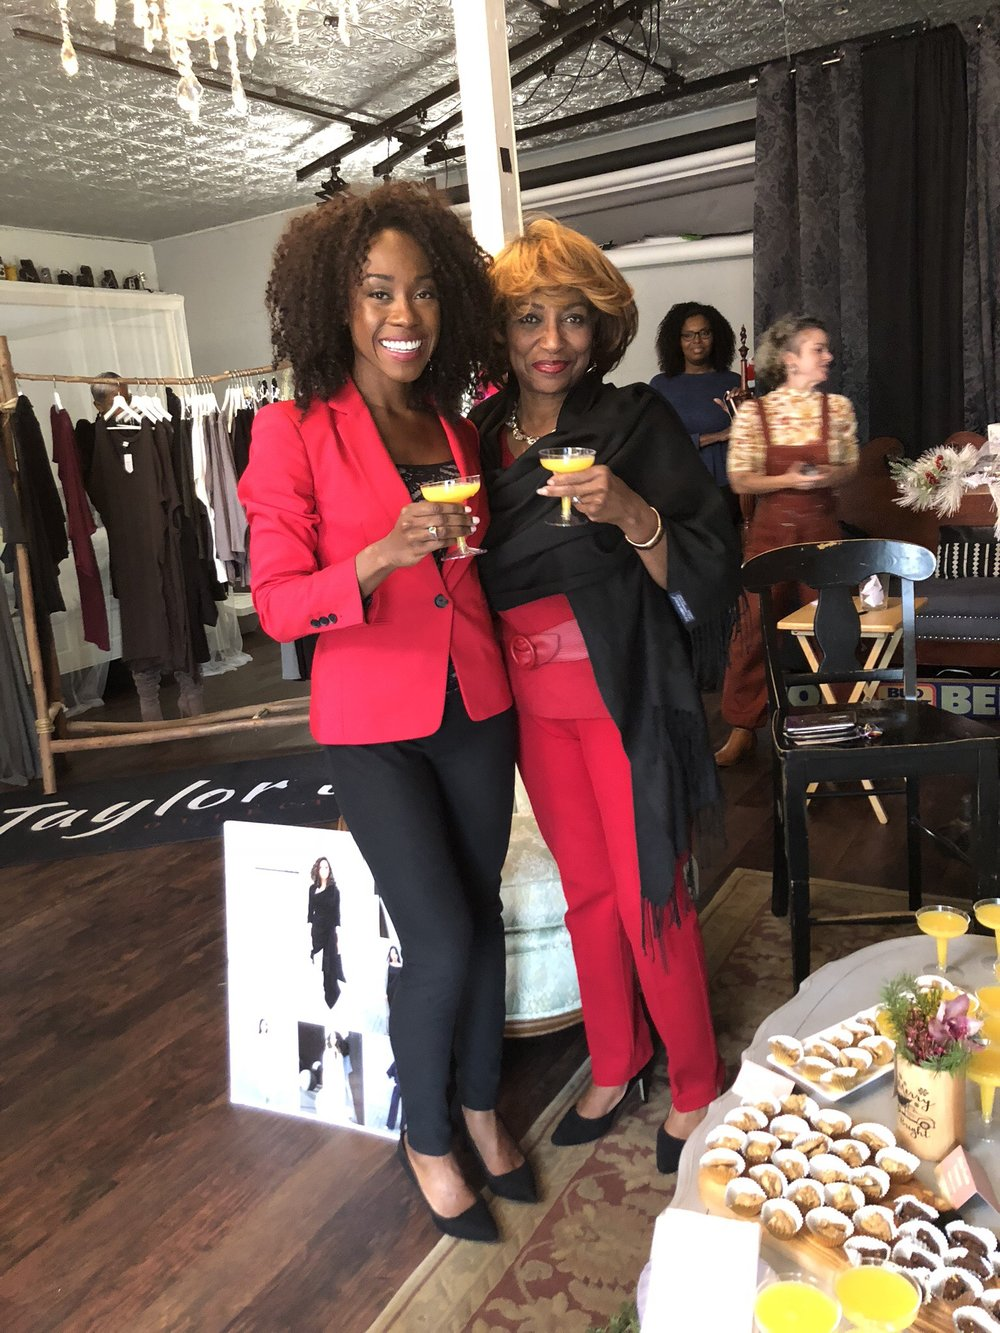 This is me and Wanda Wallis at a recent Walnut Creek Socialites event. She is one of my style icons! Always classy, modern yet timeless, and chic.